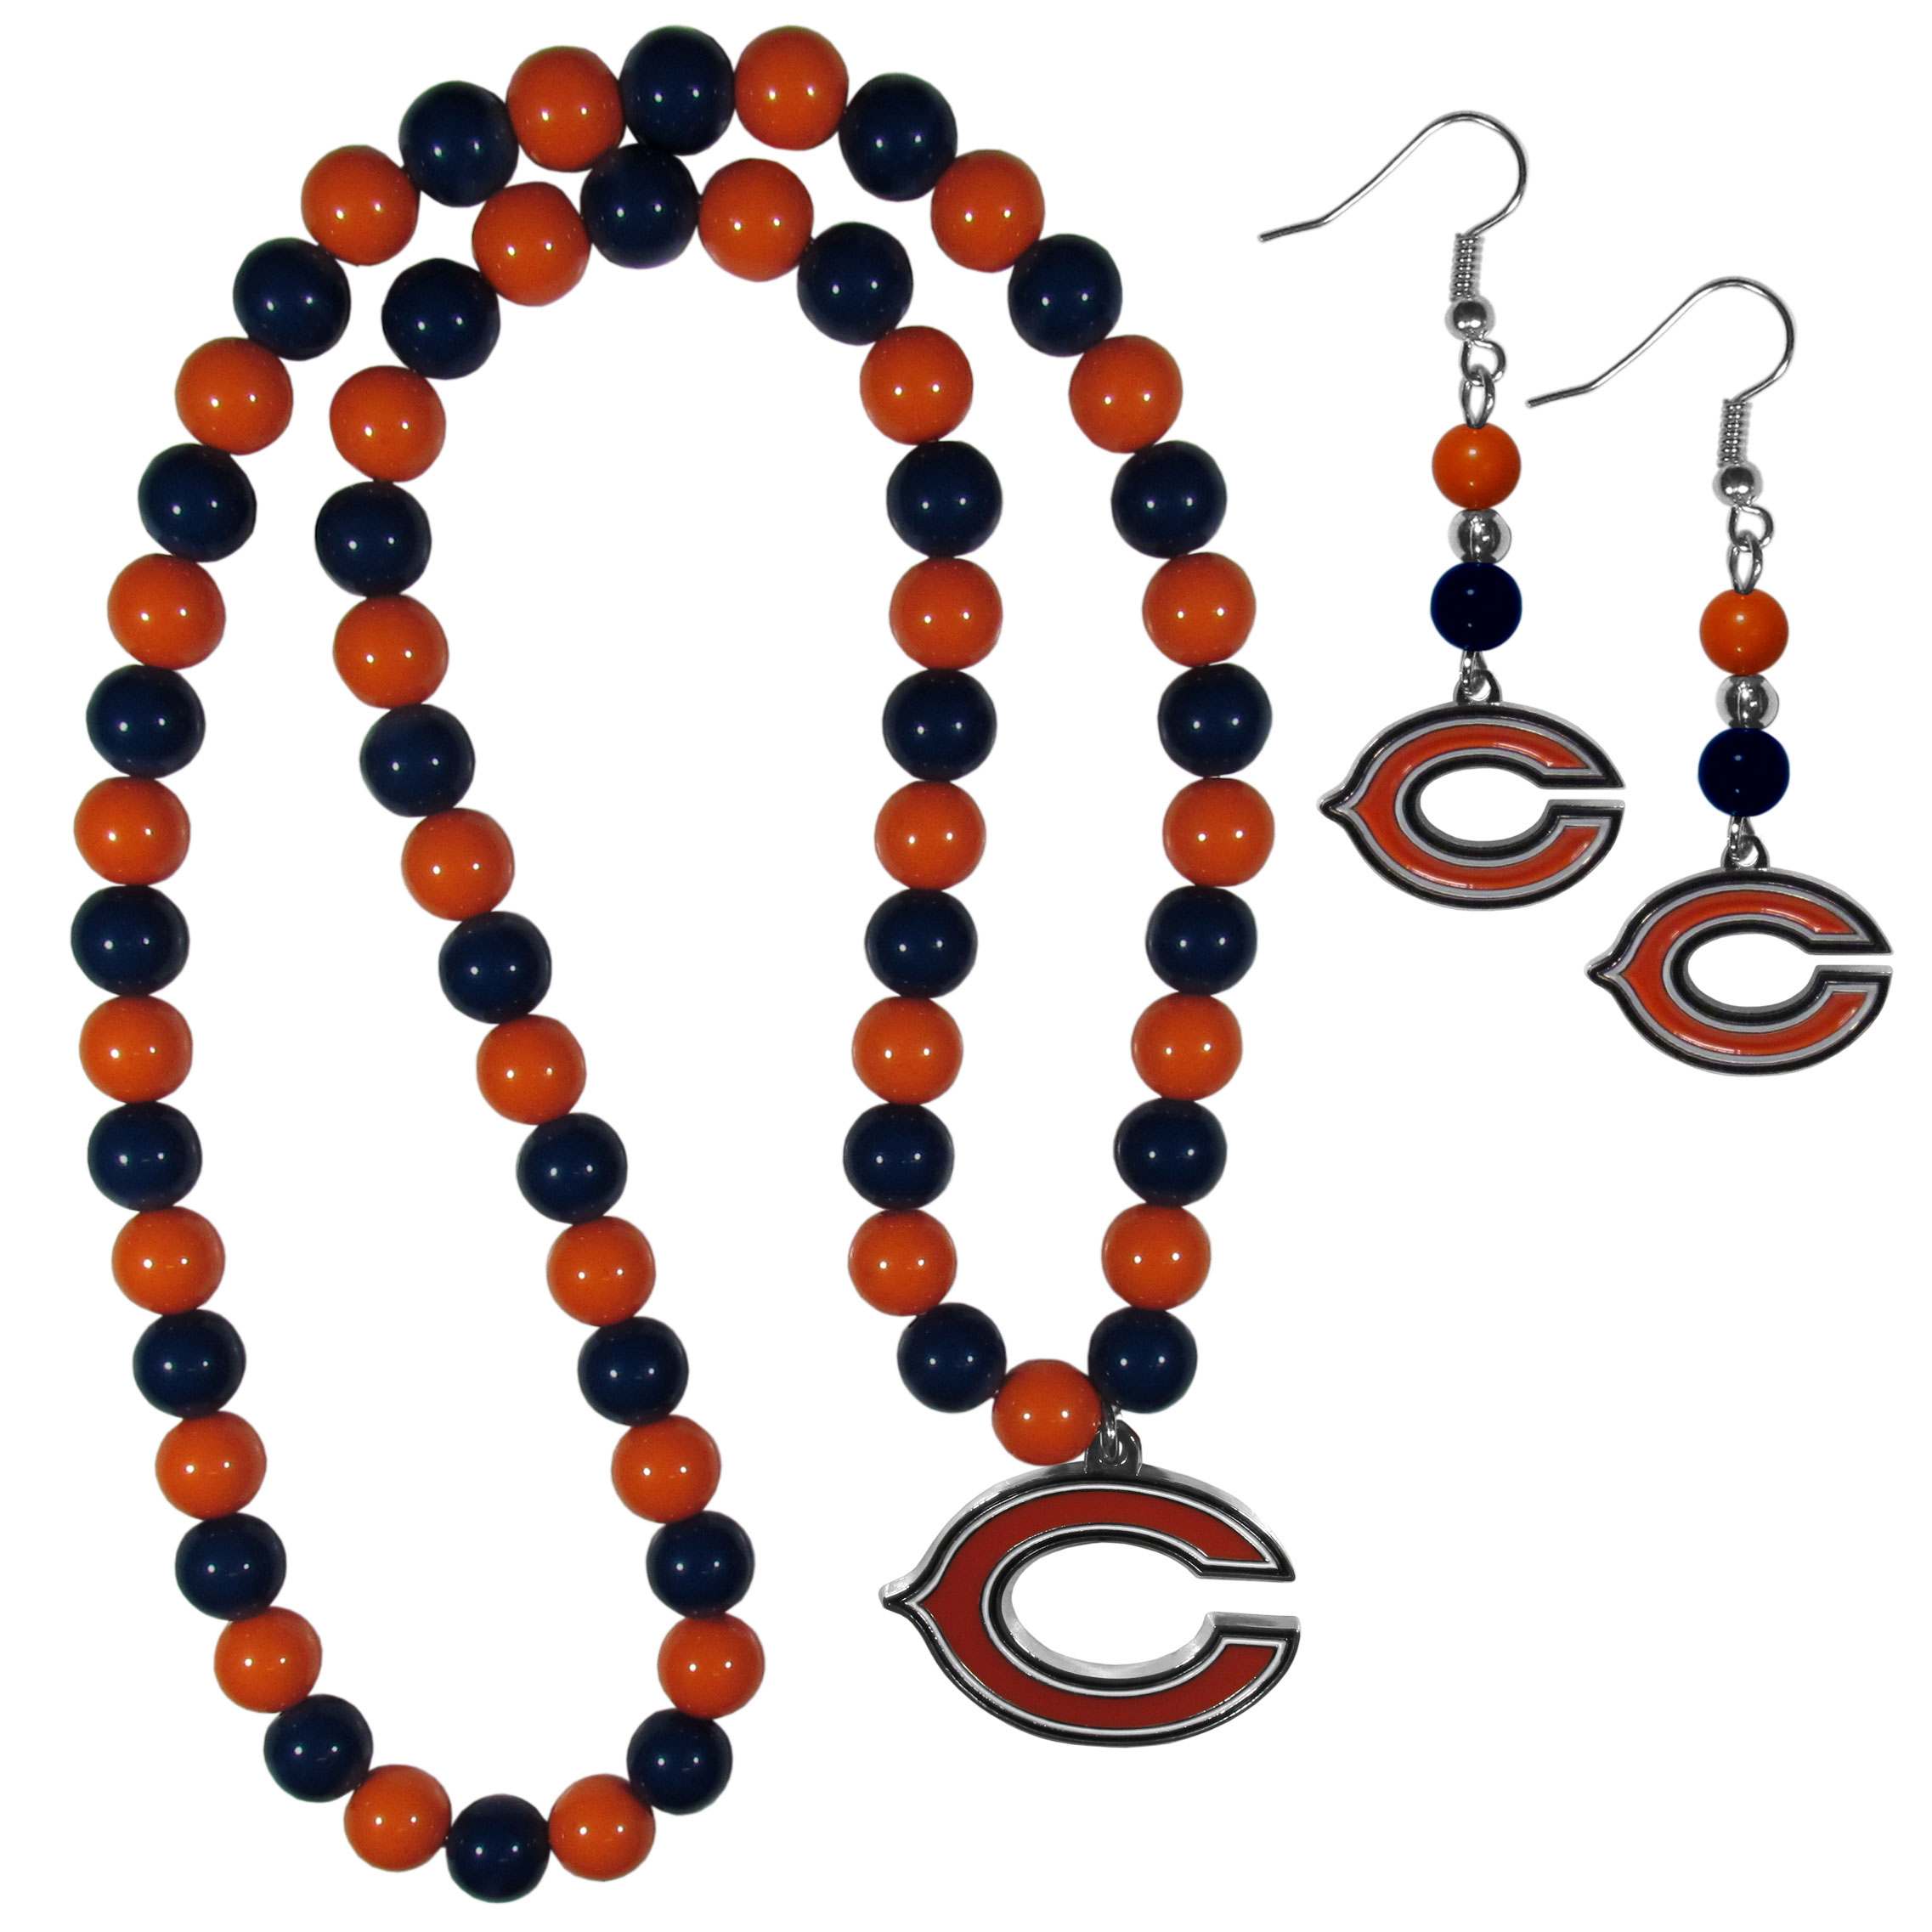 Chicago Bears Fan Bead Earrings and Necklace Set - These fun and colorful Chicago Bears fan bead jewelry pieces are an eyecatching way to show off your team spirit. The earrings feature hypoallergenic, nickel free fishhook post and 2 team colored beads with a beautifully carved team charm to finish this attractive dangle look. The mathcing bracelet has alternating team colored beads on a stretch cord and features a matching team charm.